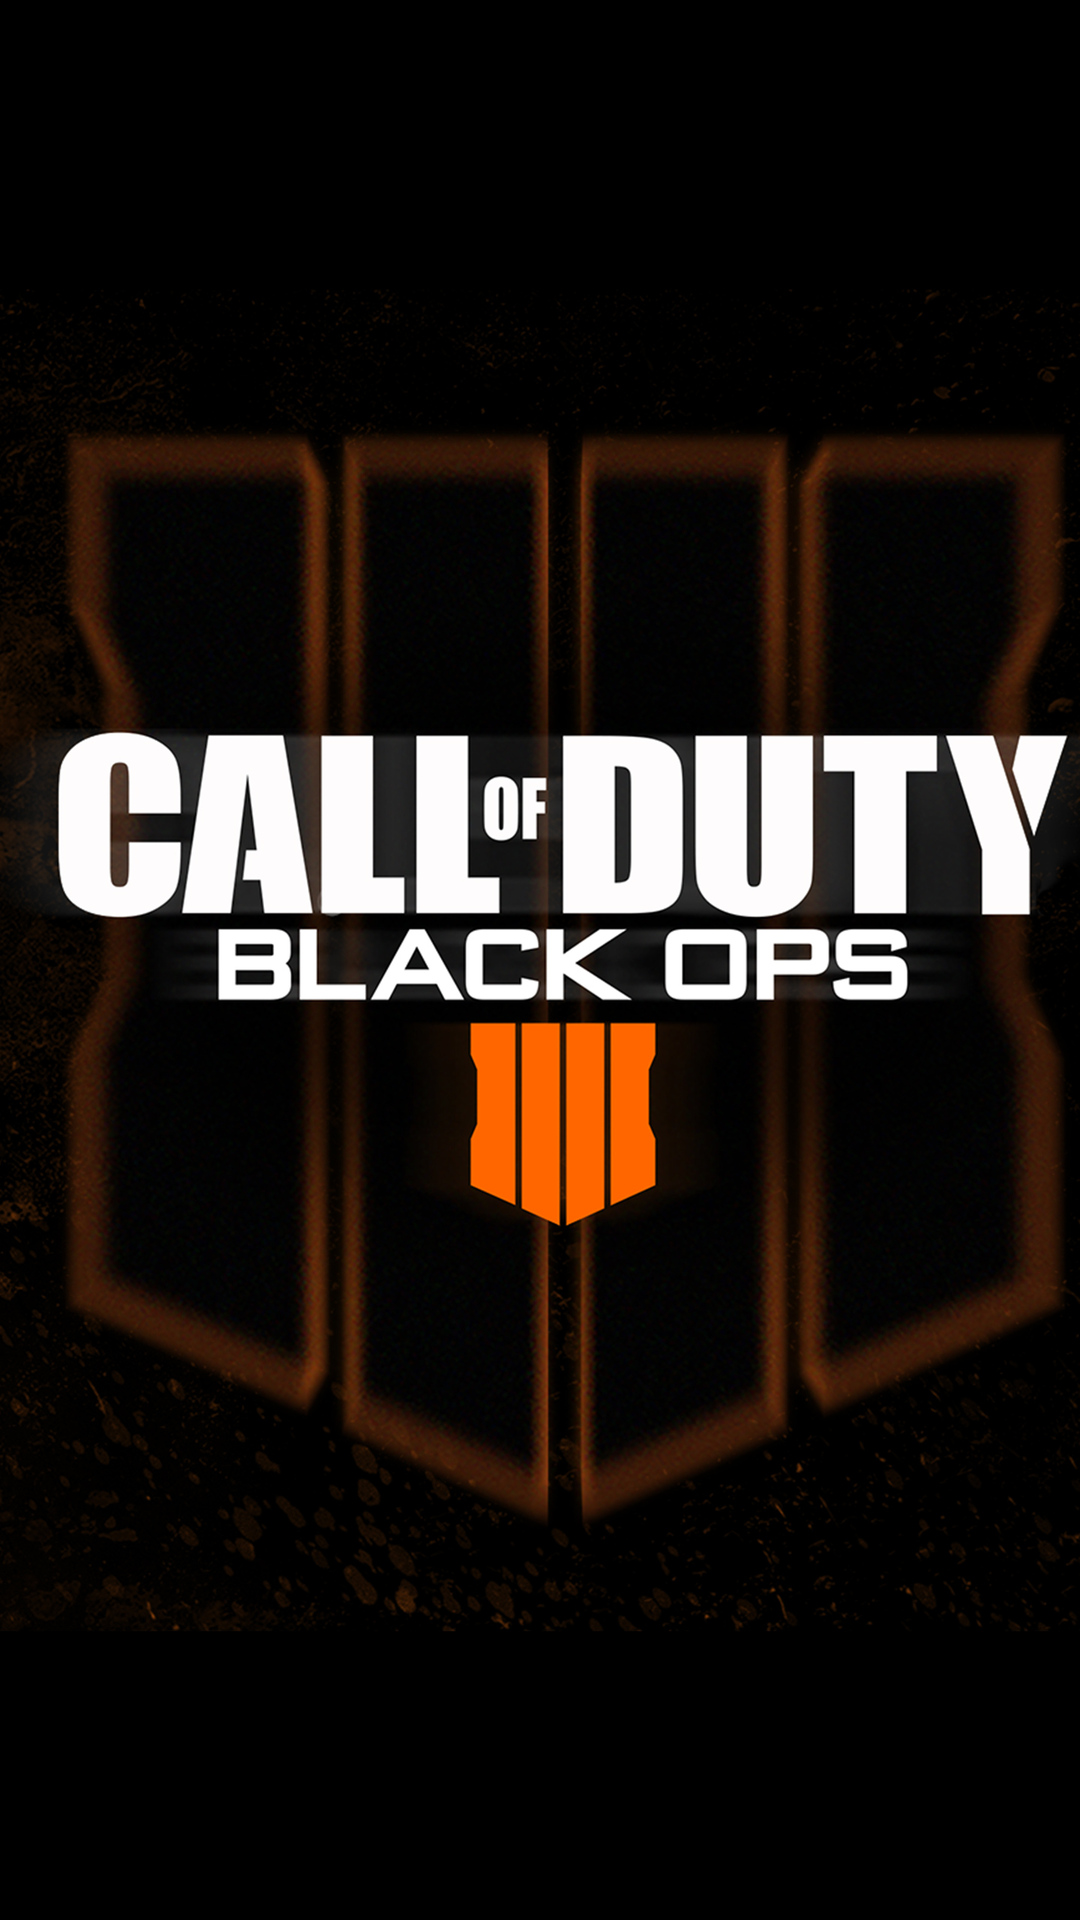 Download Call Of Duty Black Ops 3 Wallpaper Iphone 6